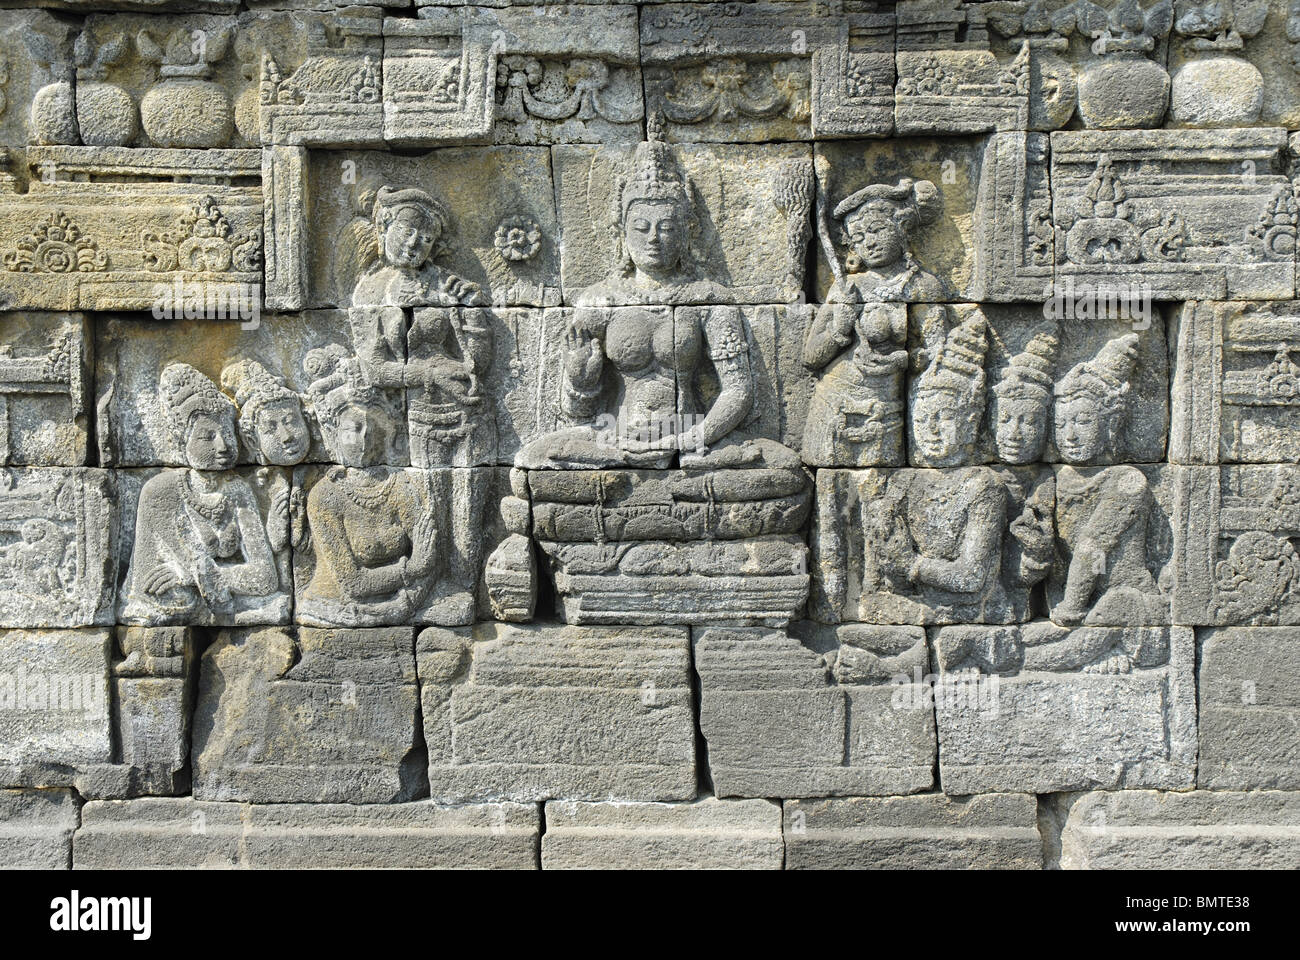 Indonesia Java Borobudur, Goddess seated on lotus throne with attendants and  Devotees, closer-view. - Stock Image